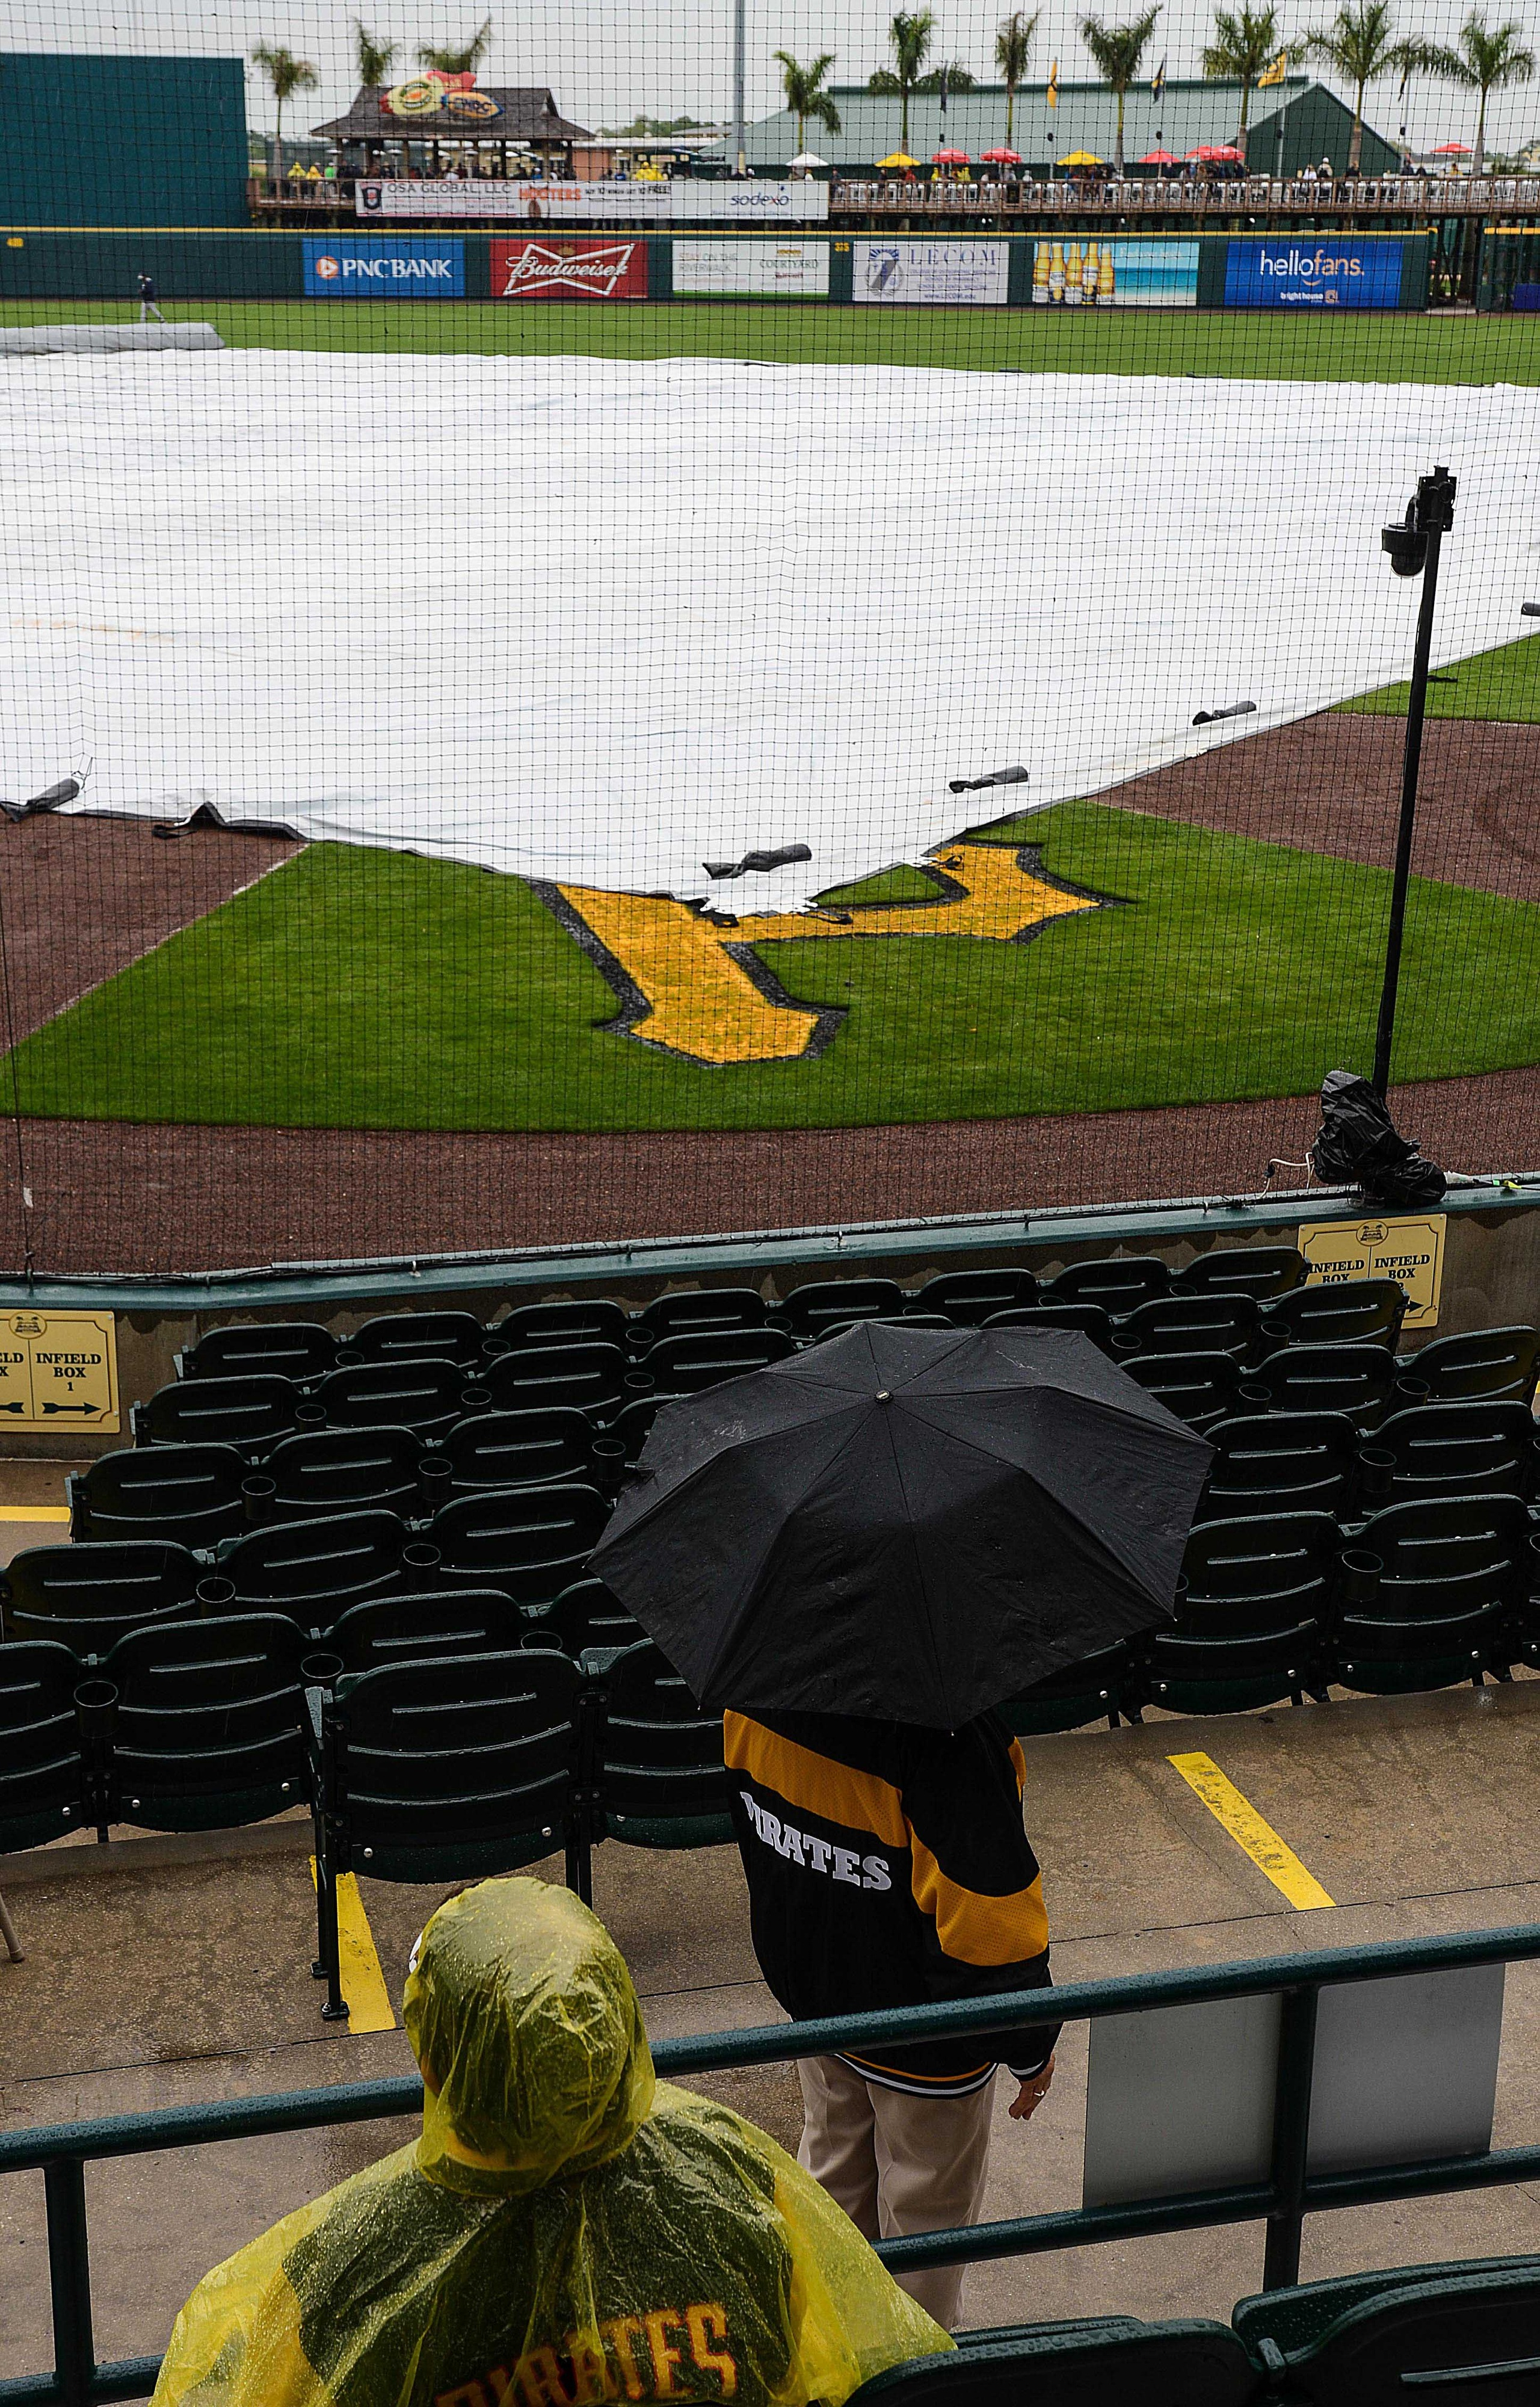 Rain delays sometimes bring out the creative sides of baseball teams